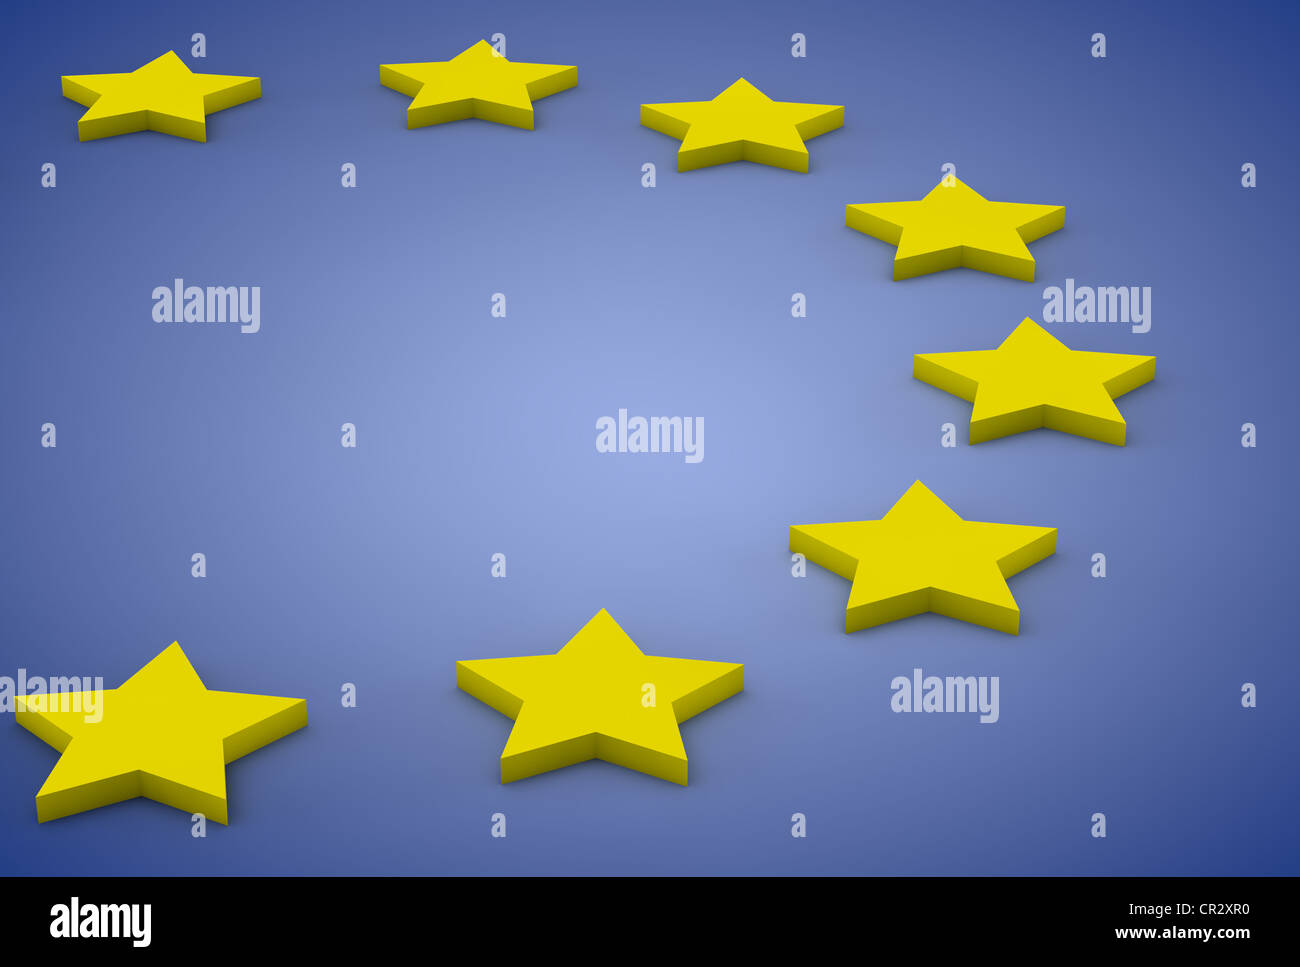 European flag with stars, European Union, Europe, 3D illustration - Stock Image